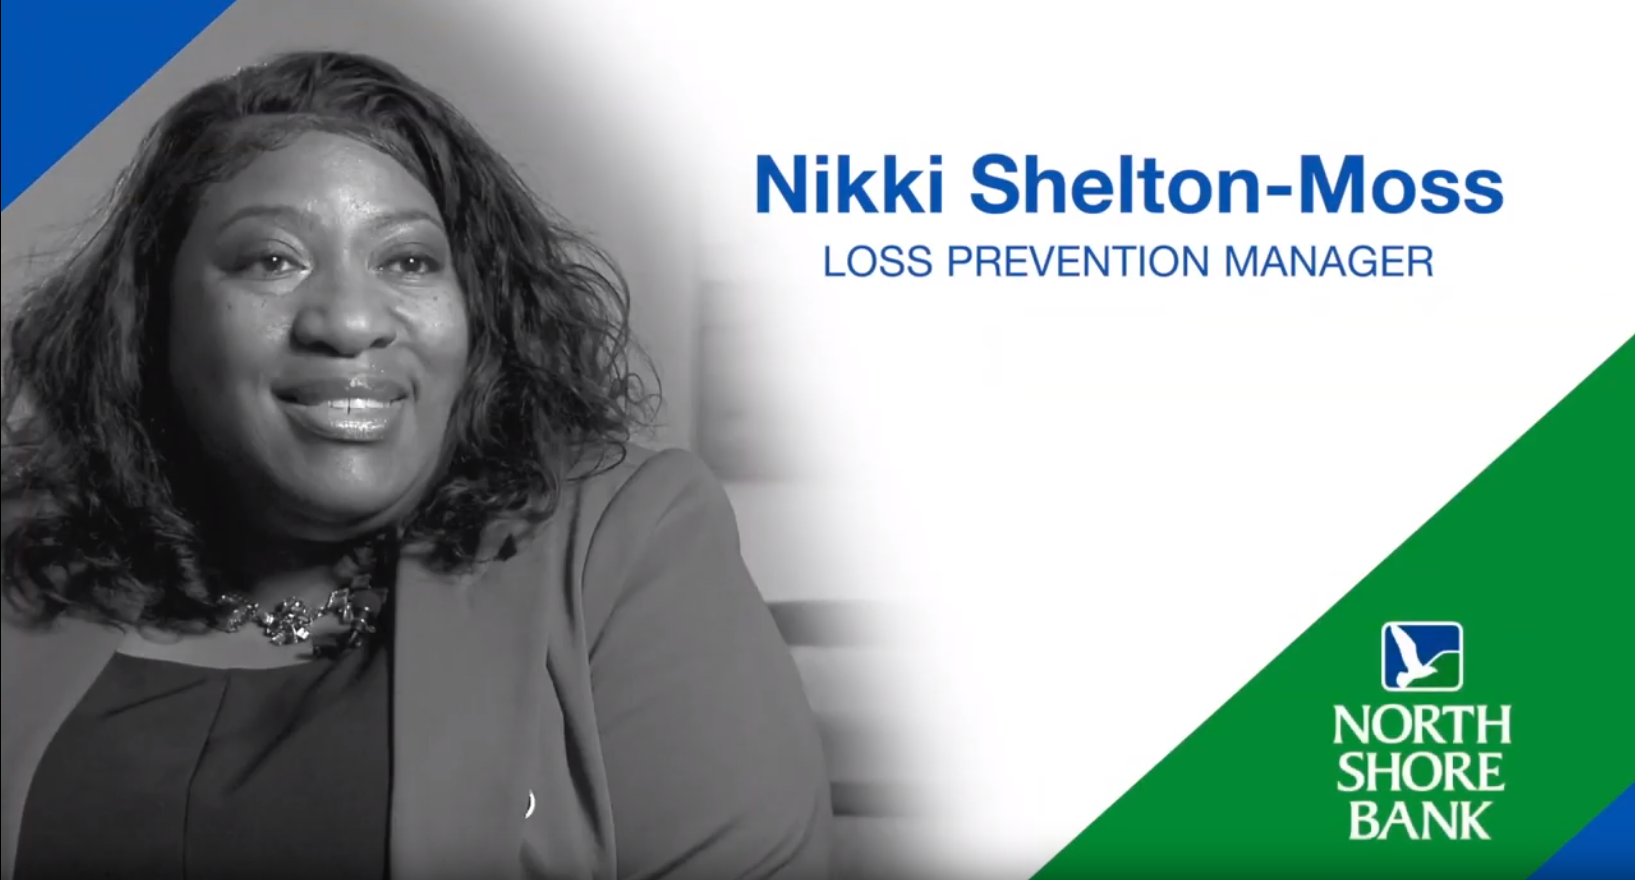 Nikki Shelton-Moss - North Shore Bank Loss Prevention Manager